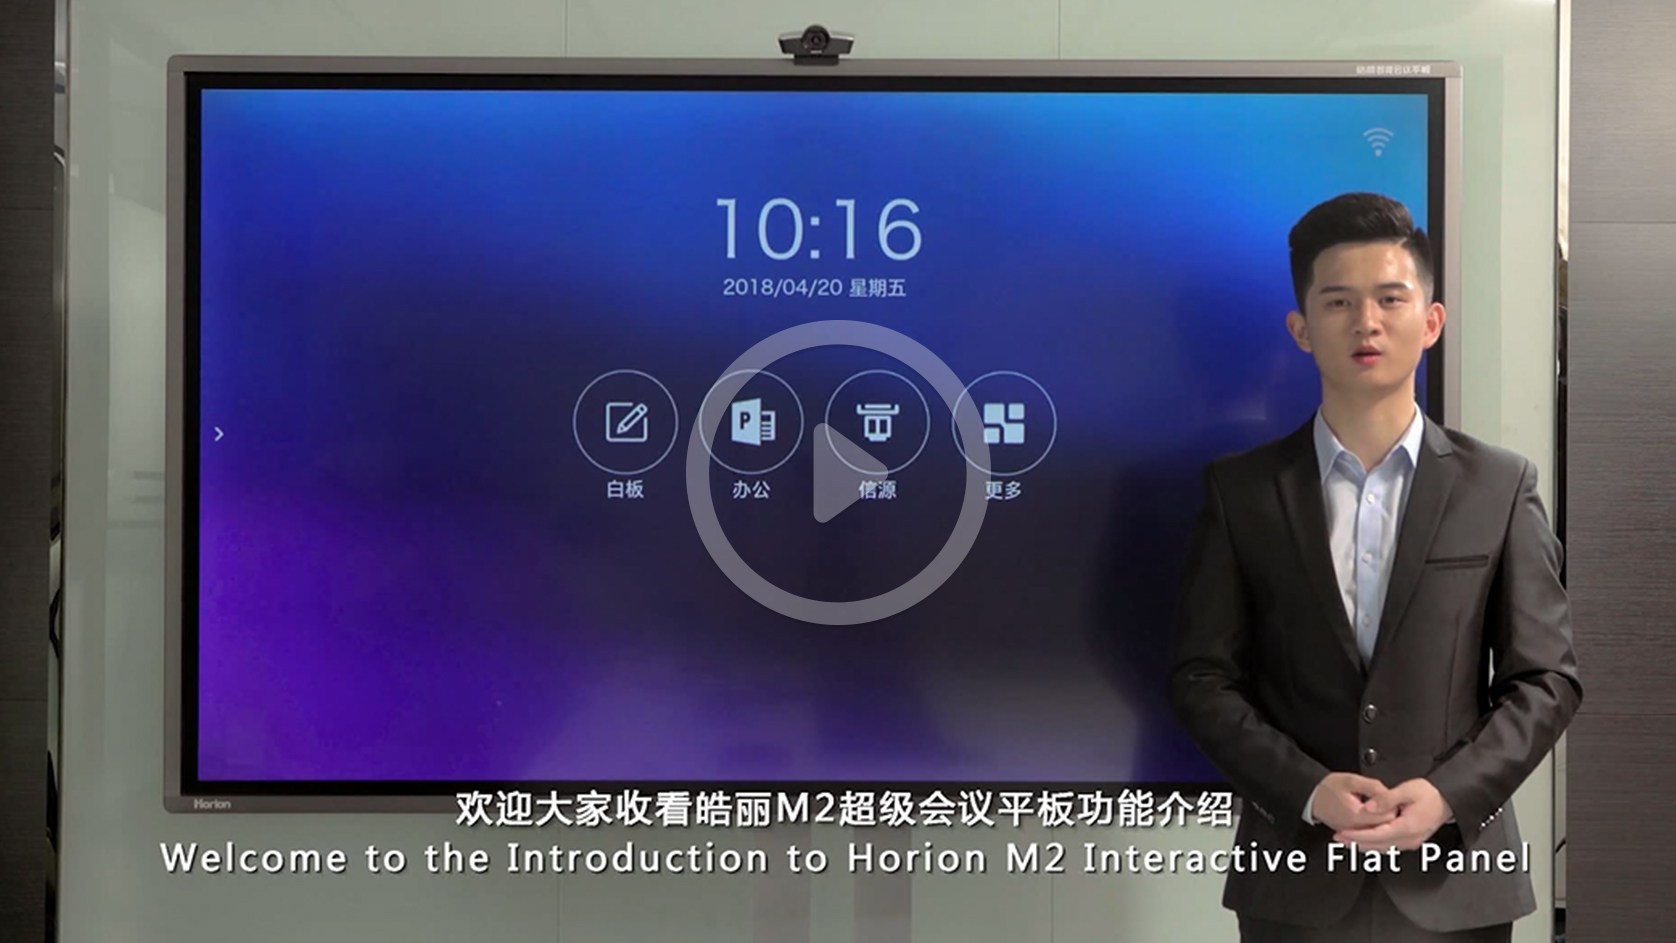 <b>Introduction Video</b><br /> Introduction Video of Horion M2